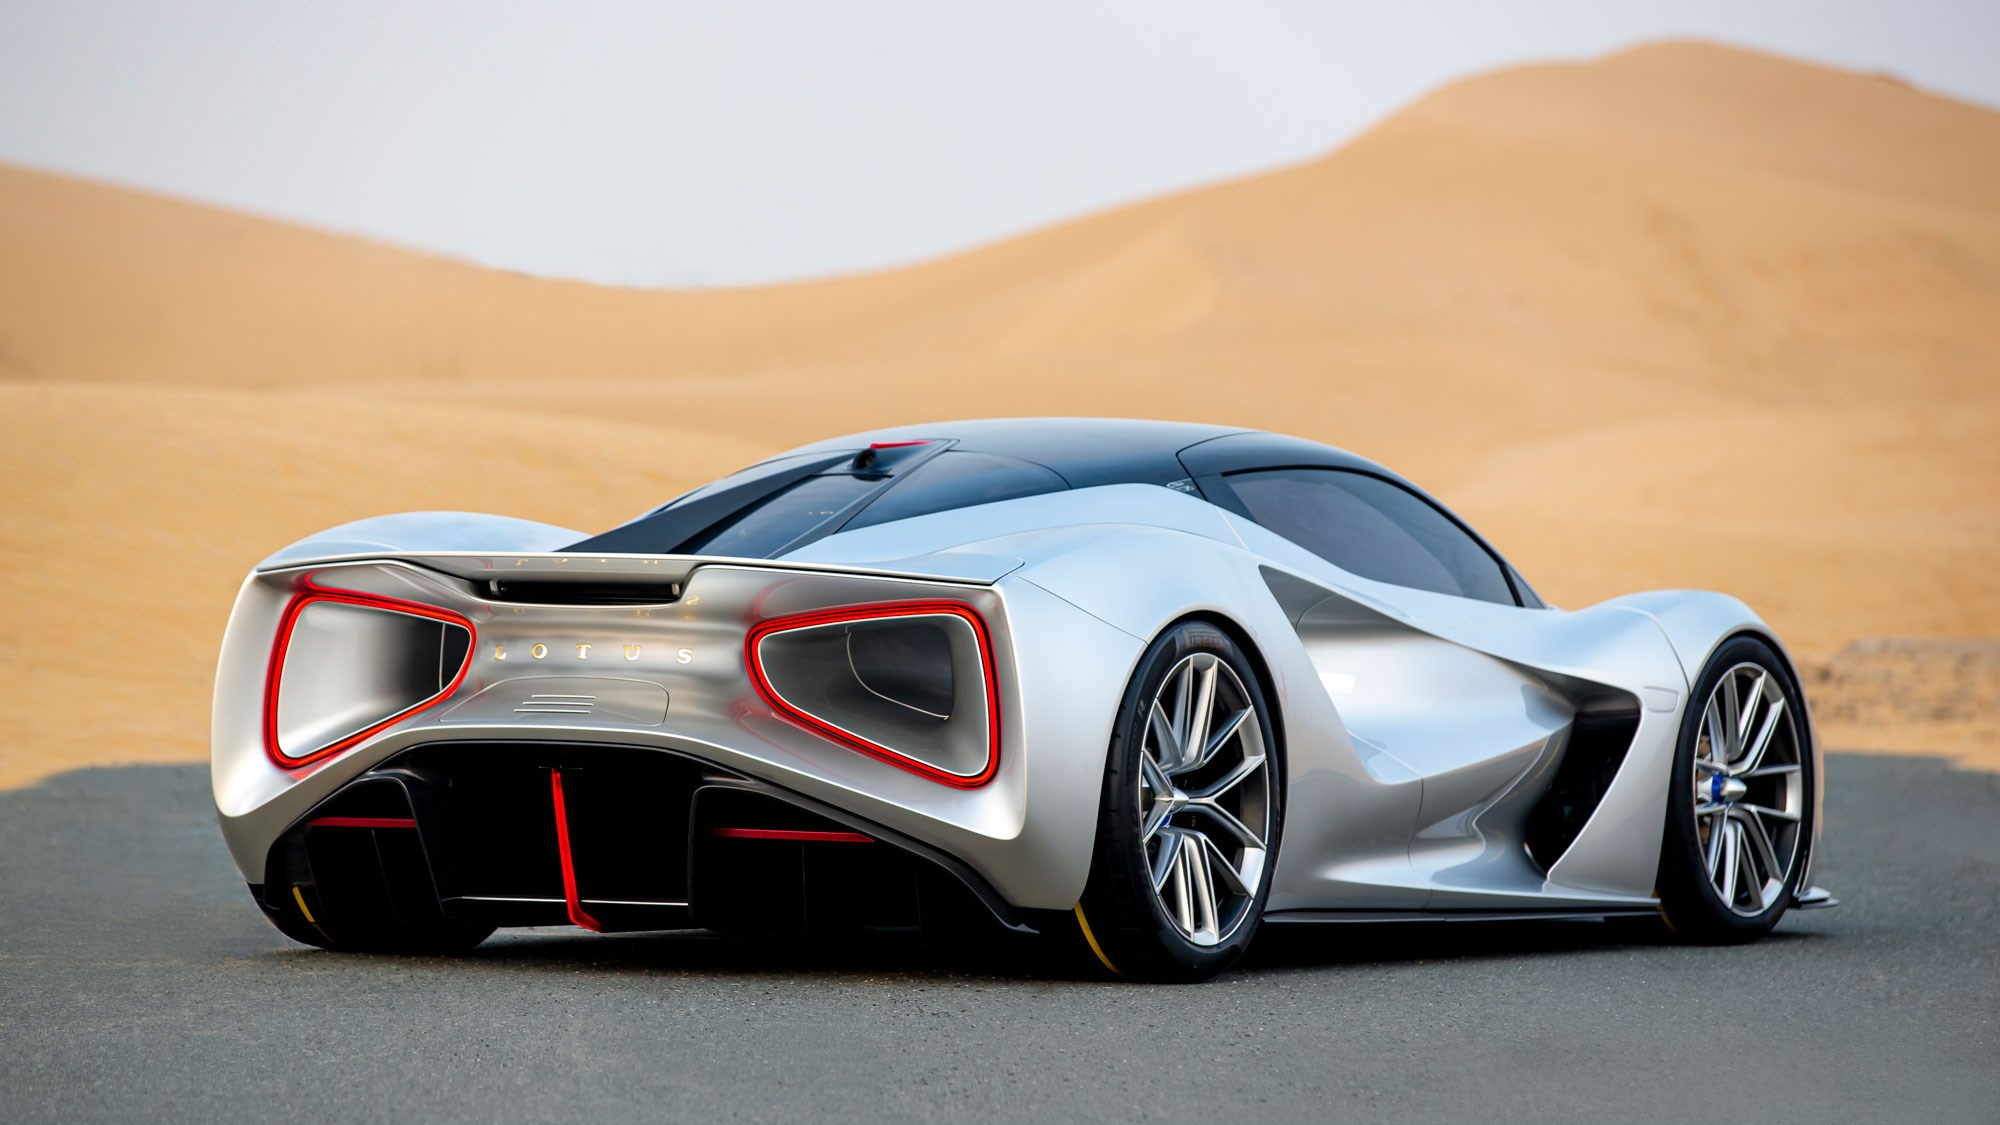 Lotus Evija electric hypercar: what it's like at the limit ...